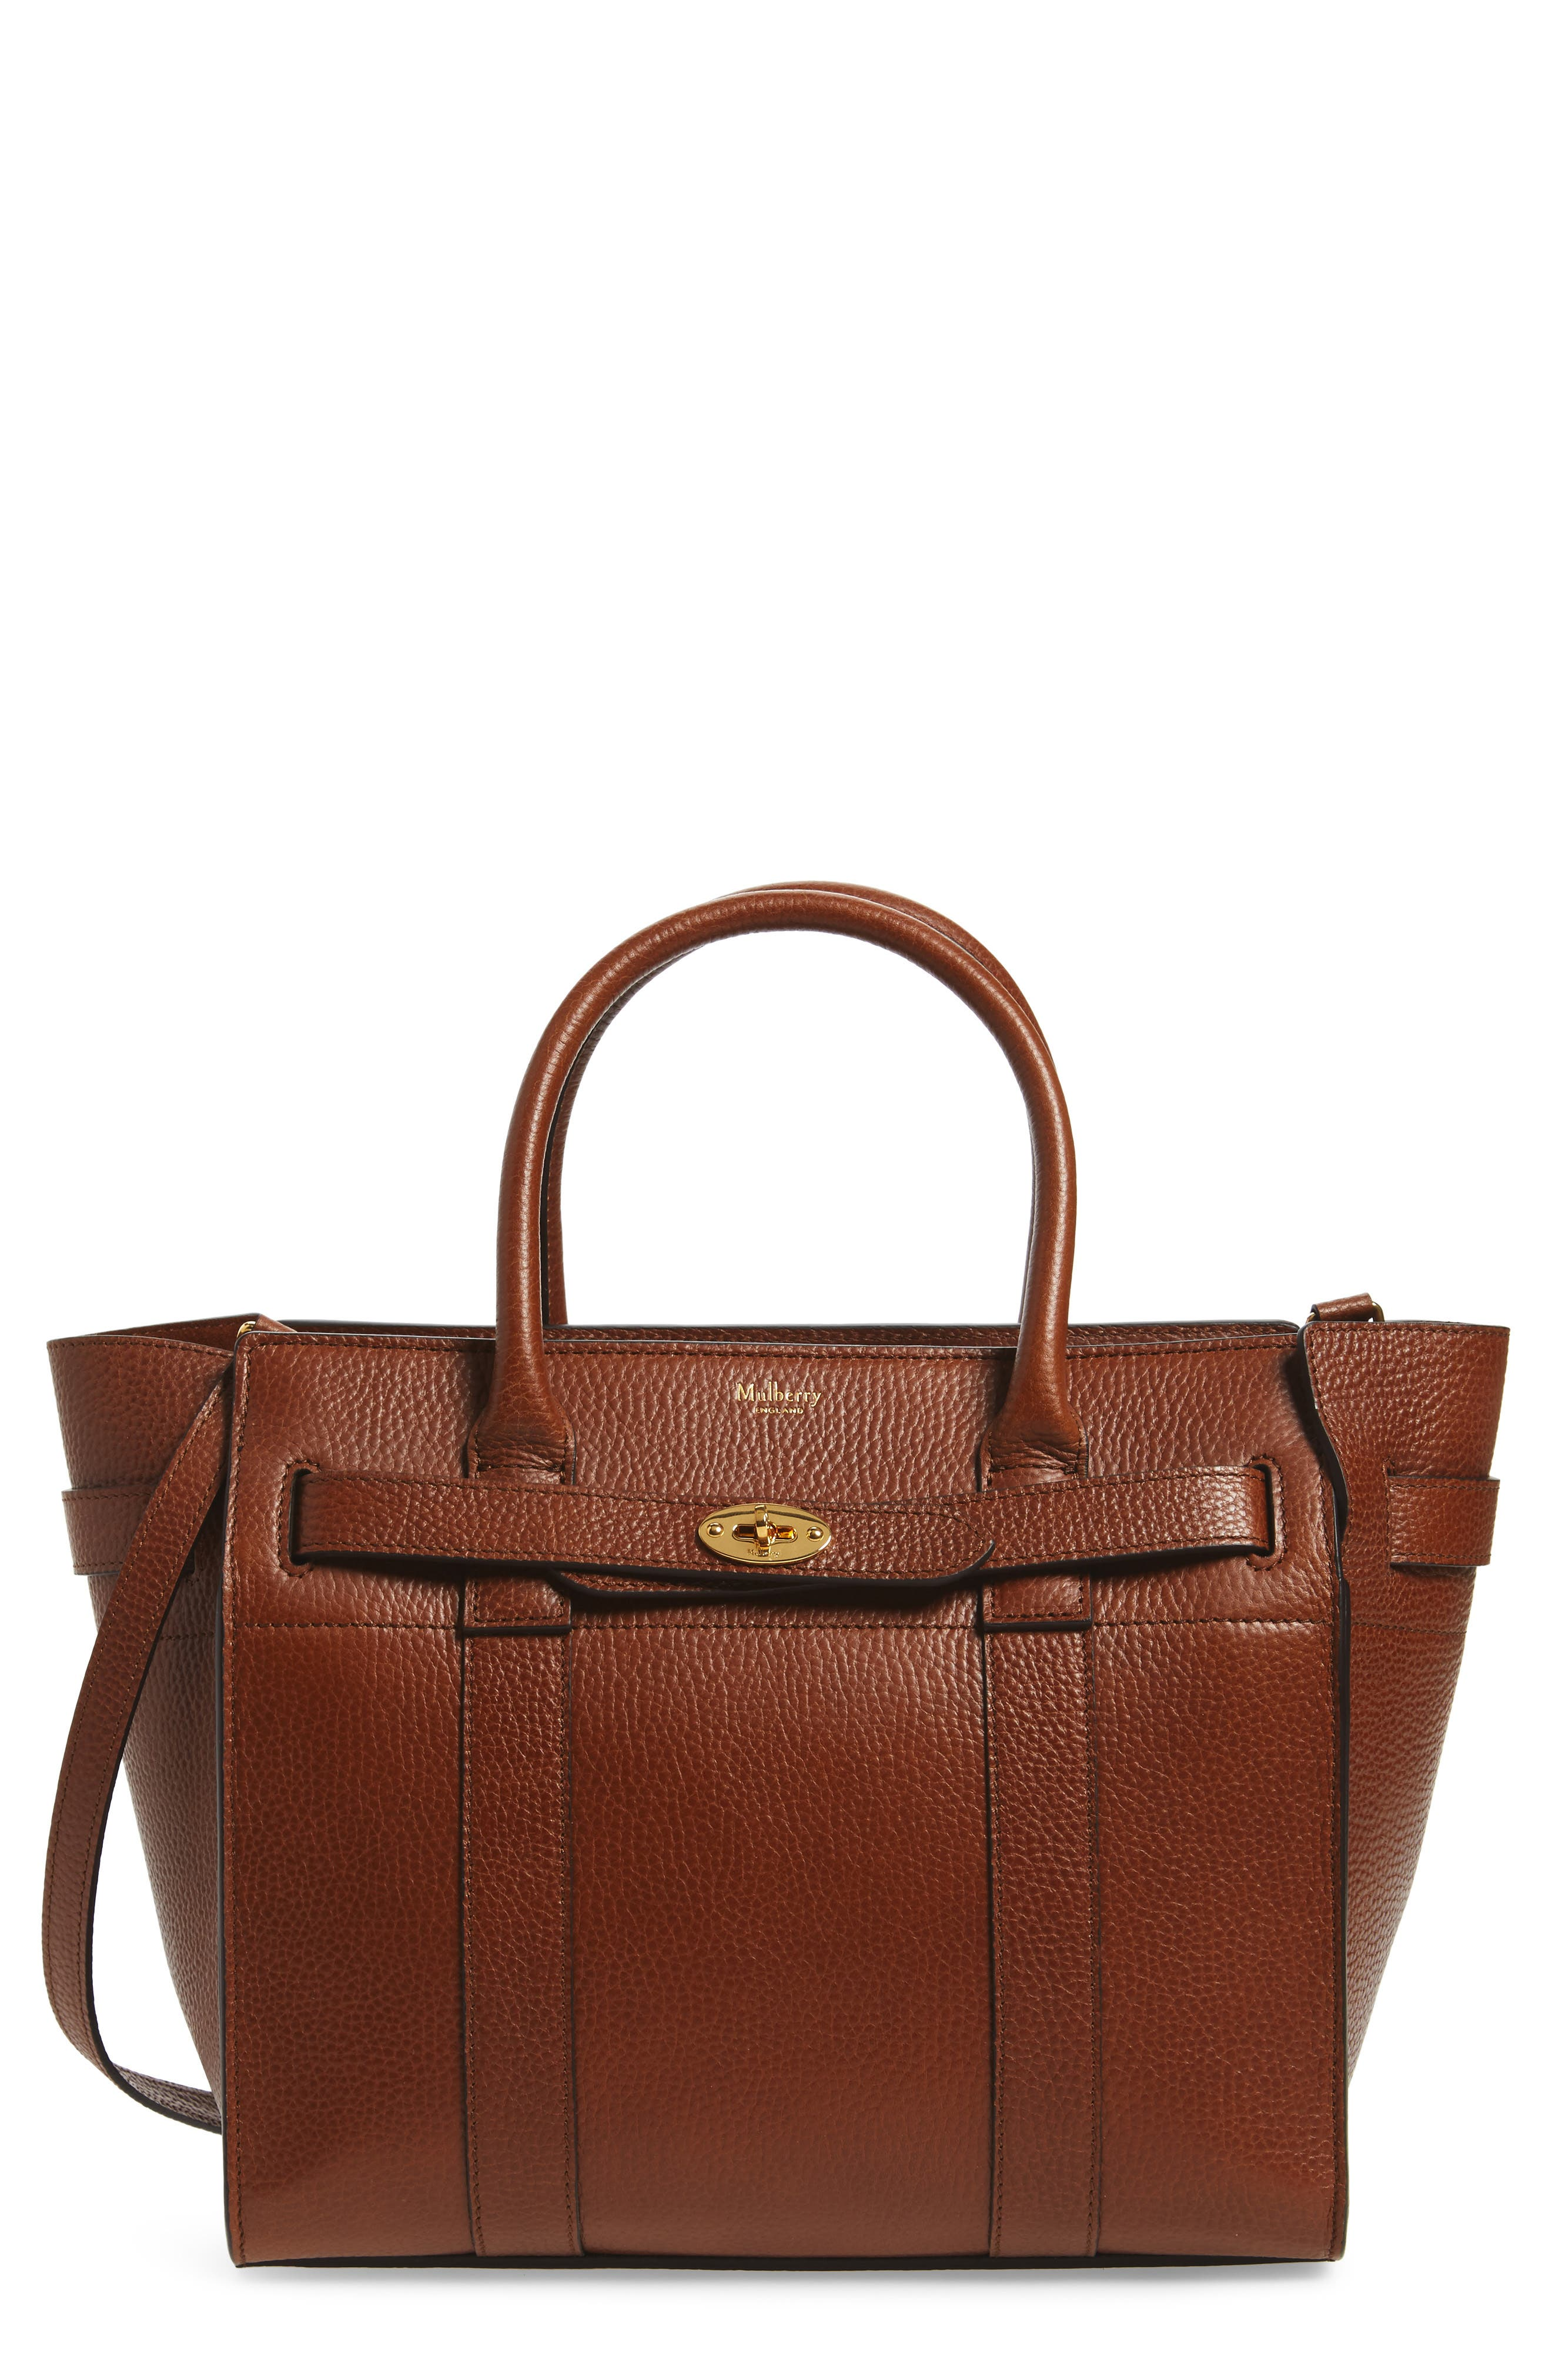 Small Bayswater Leather Satchel,                             Main thumbnail 1, color,                             201